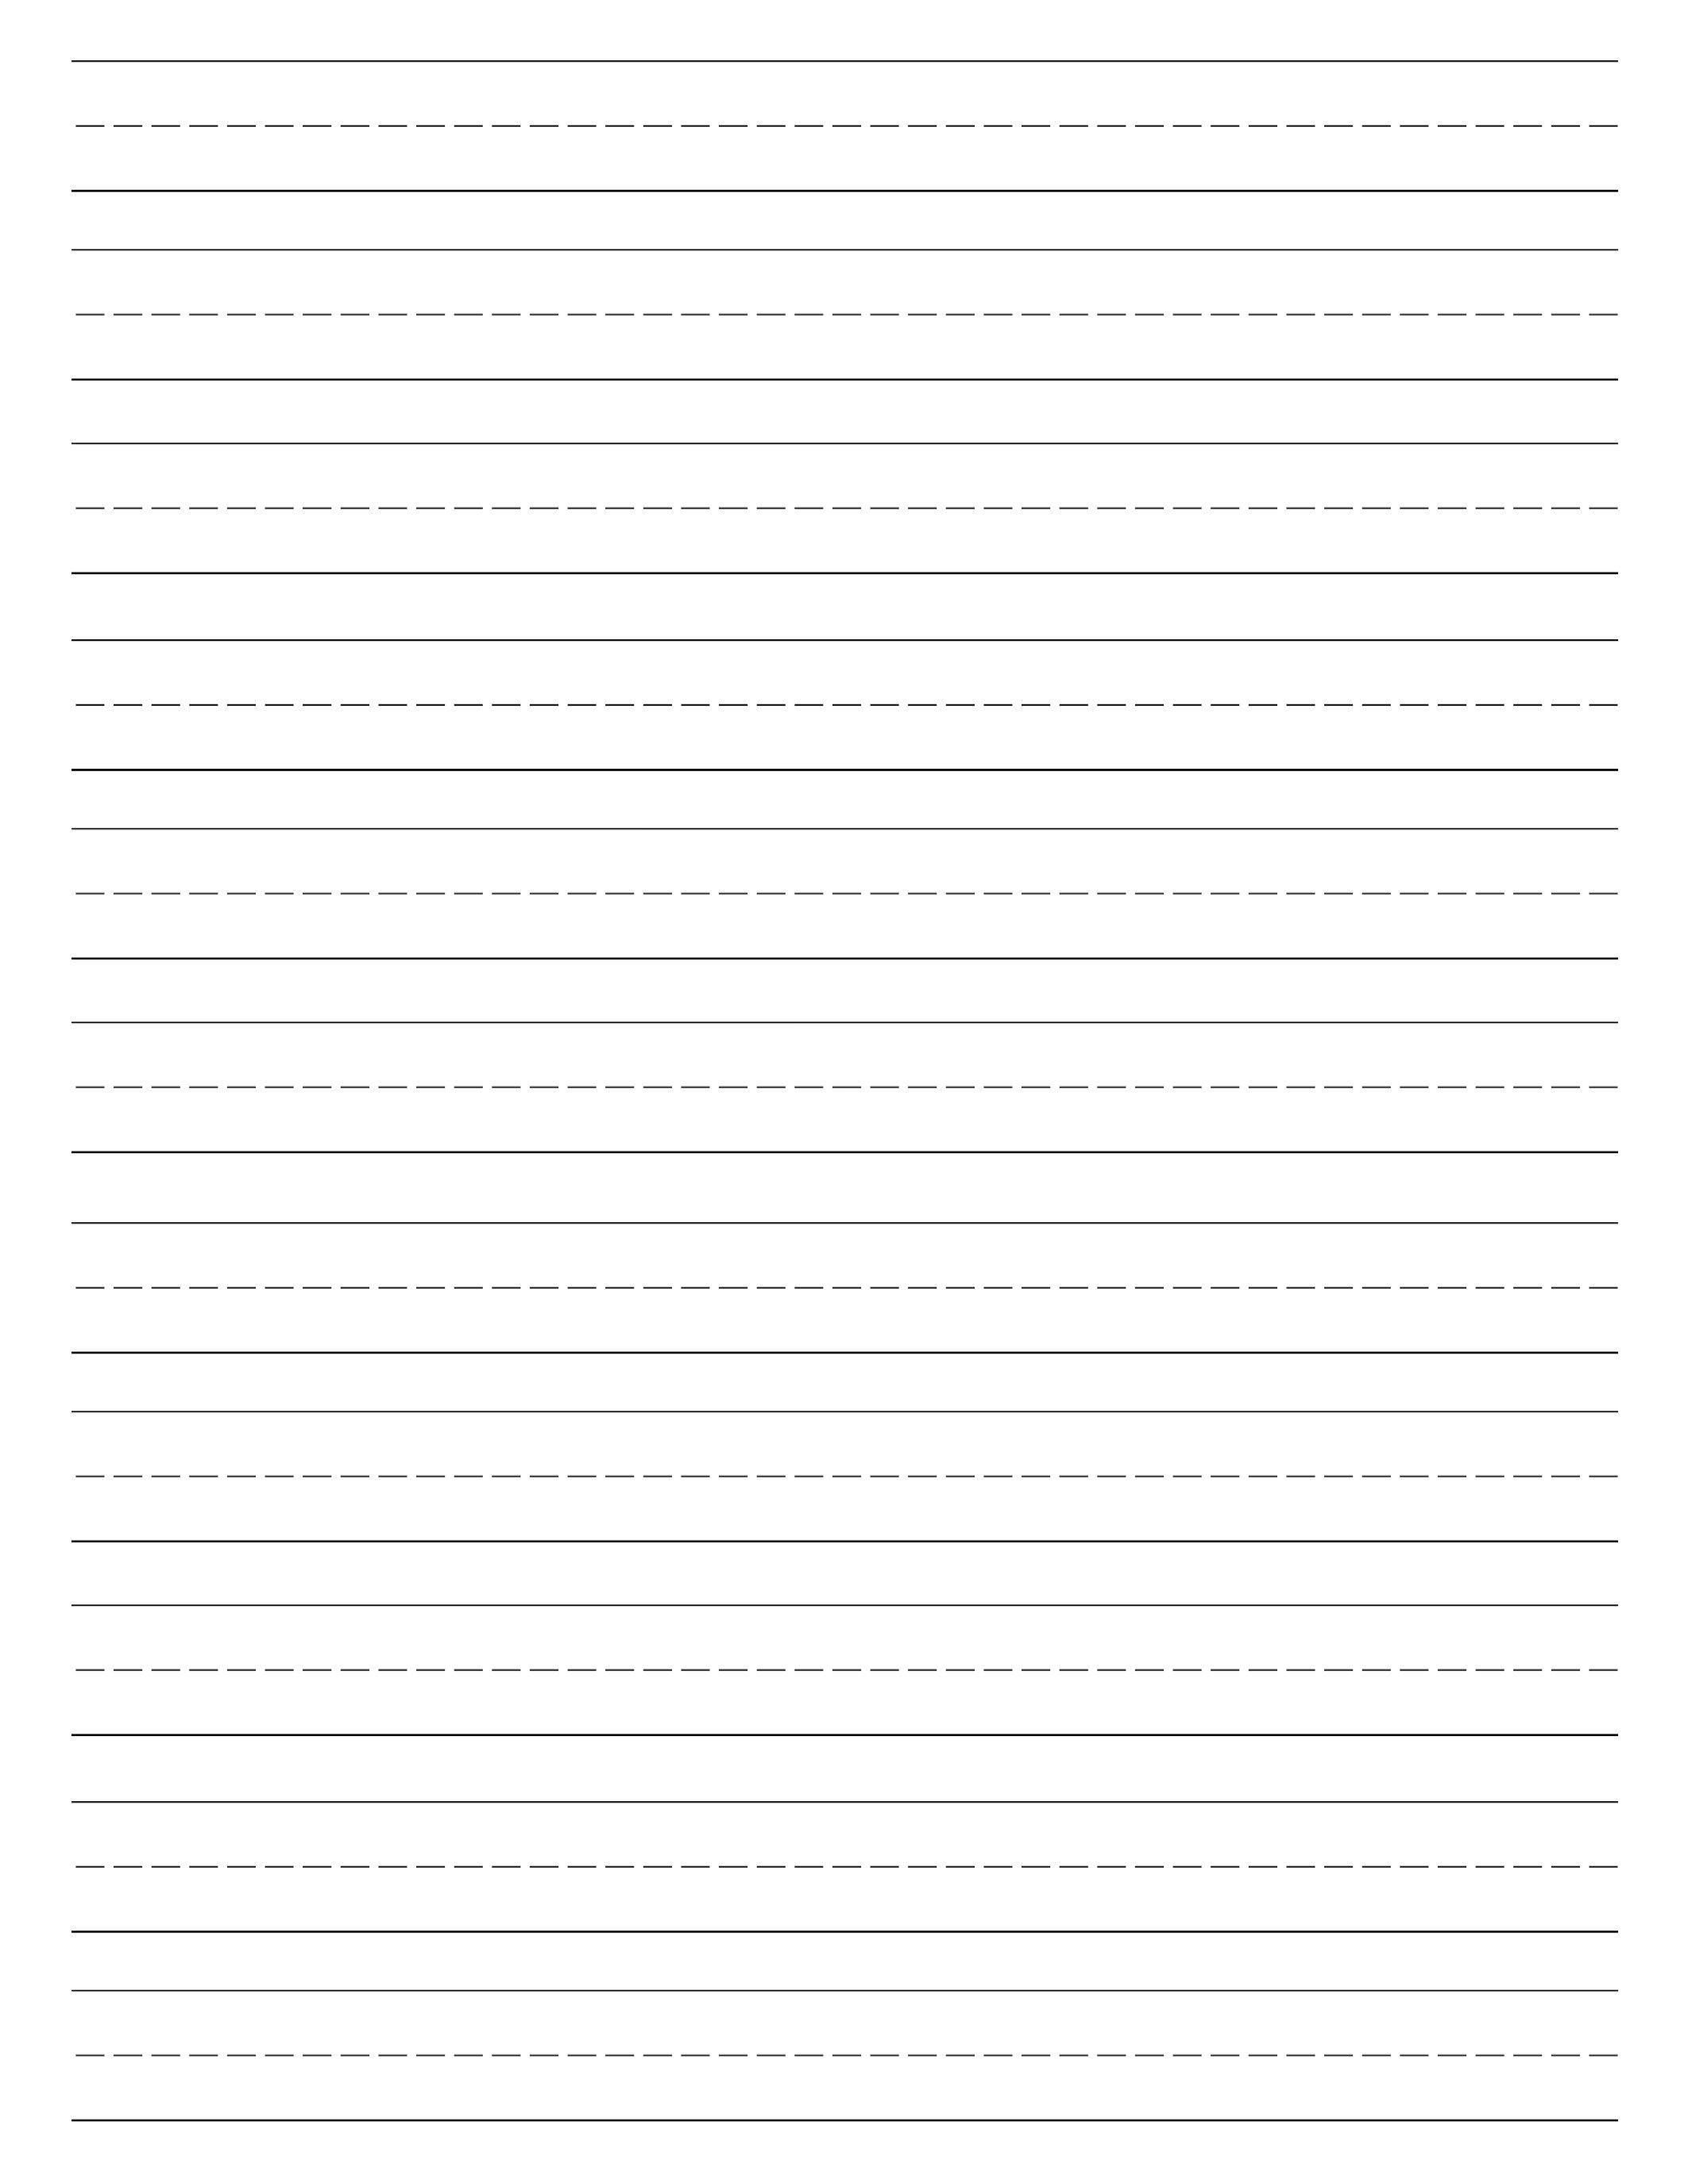 Free Printable Lined Paper {Handwriting Paper Template} | Preschool - Elementary Lined Paper Printable Free